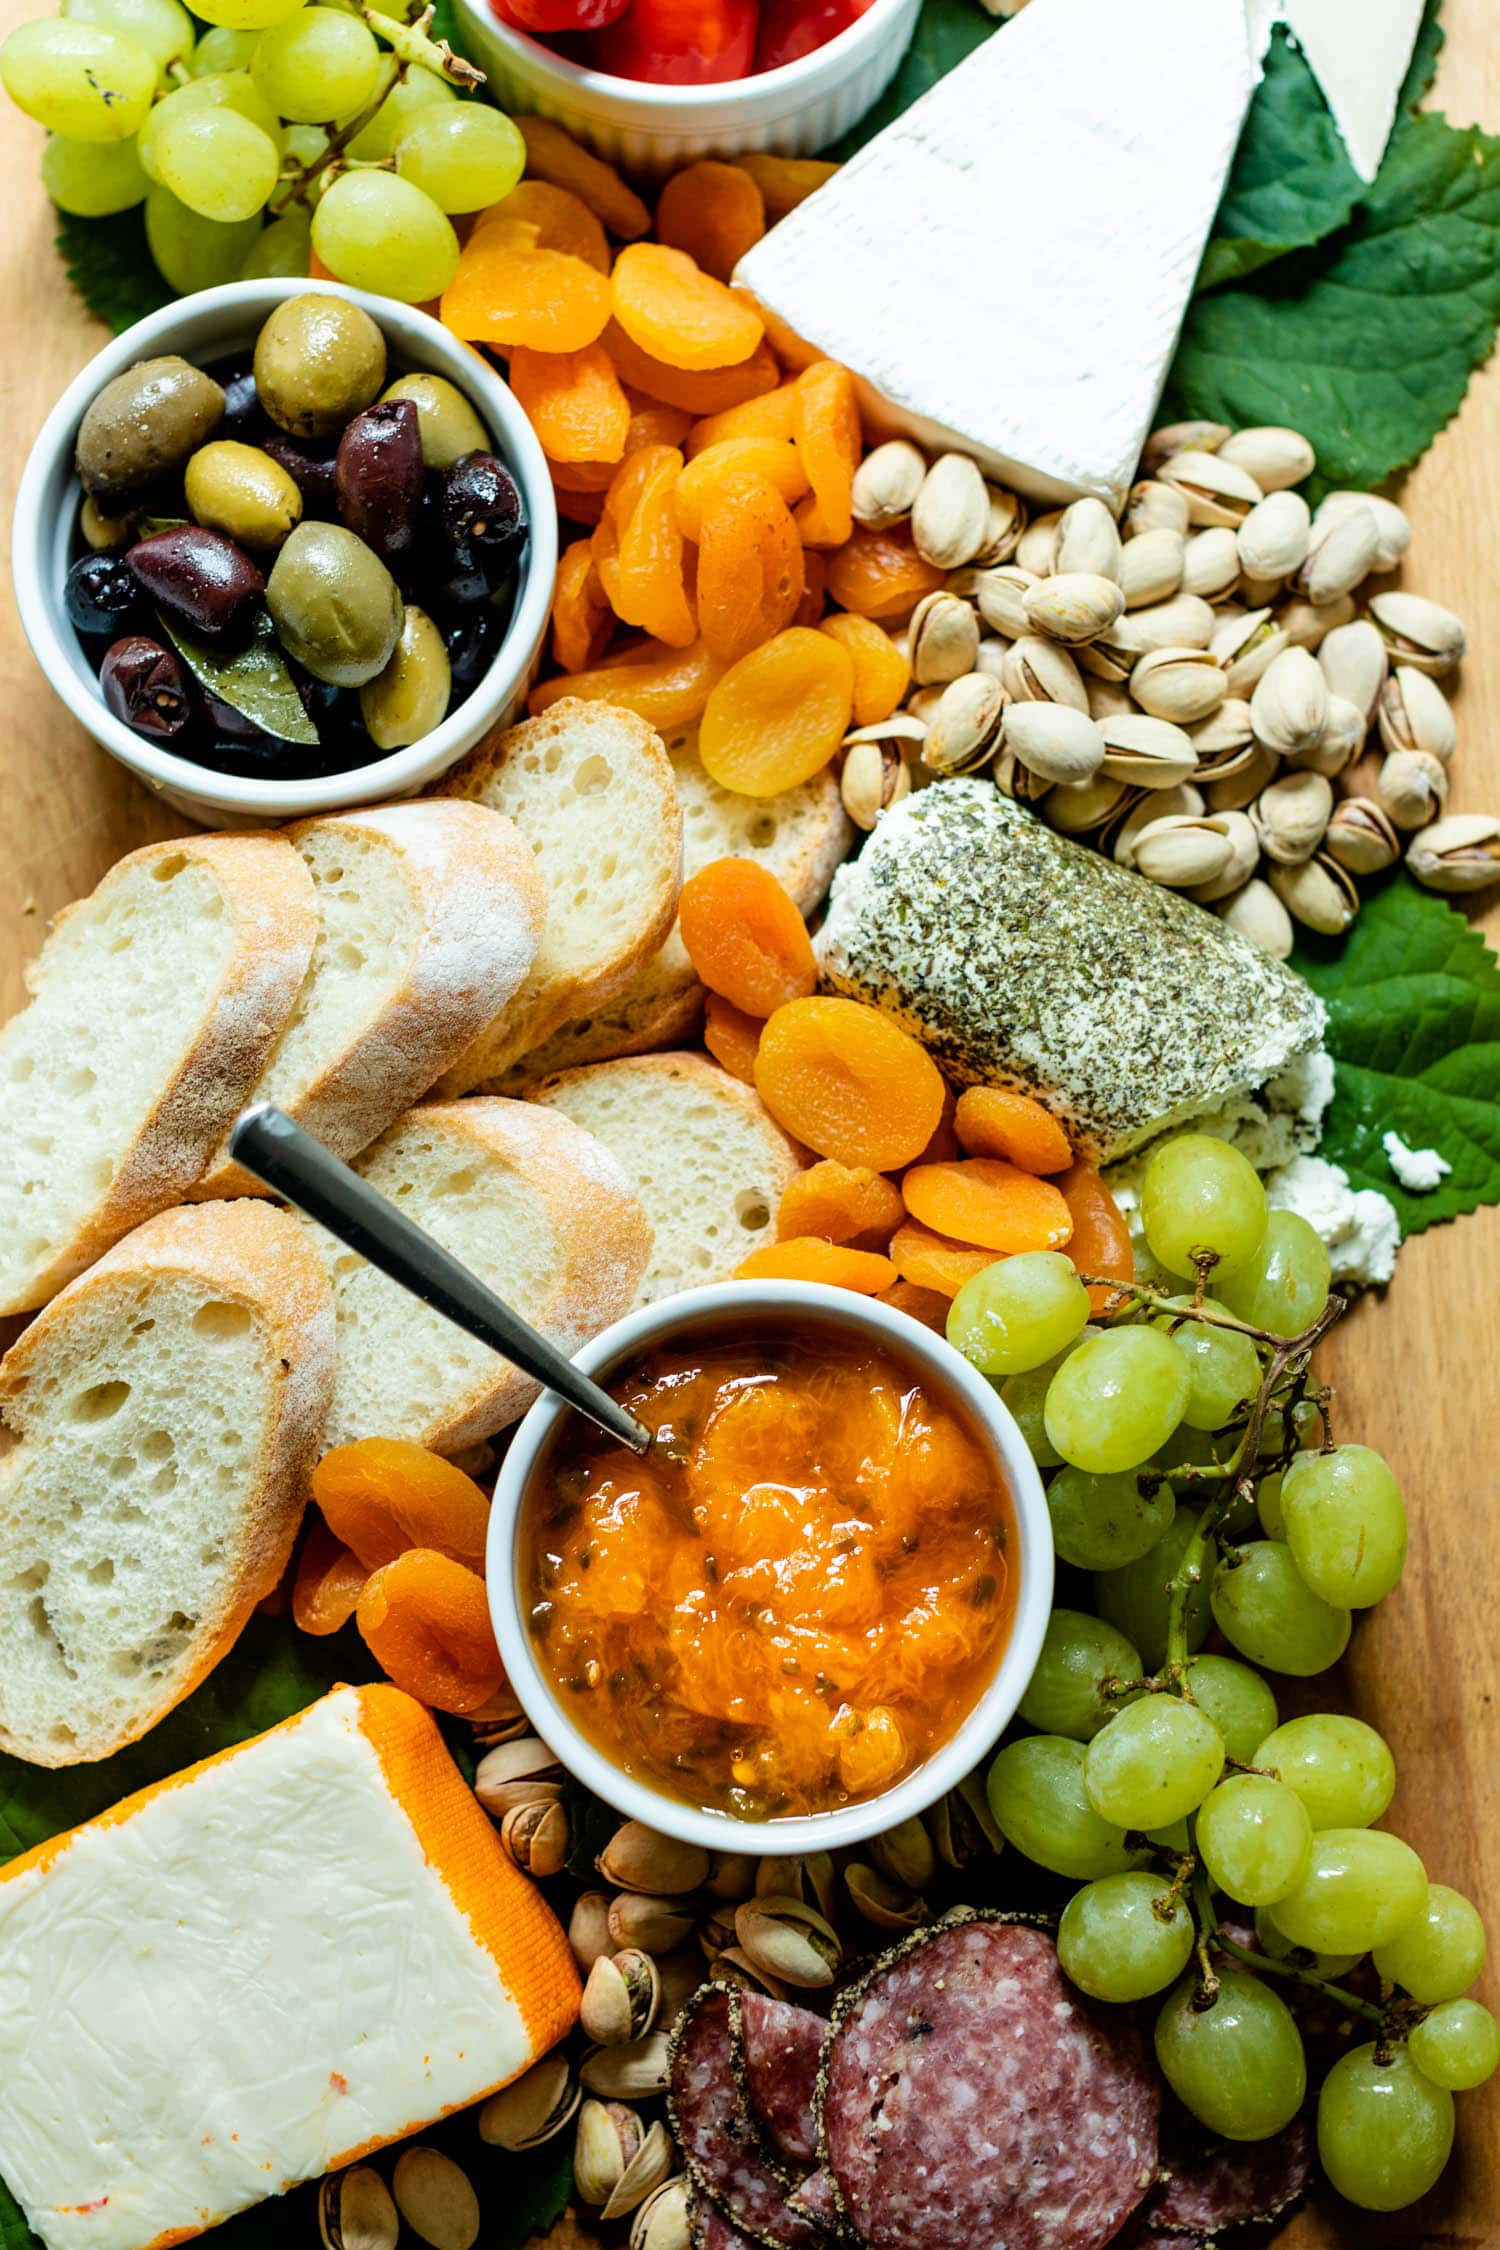 Top down view of peach jalapeño jam with a spoon in a white bowl surrounded by grapes, olives, pistachios, bread, dried apricots, cheese and goat cheese on a brown serving board